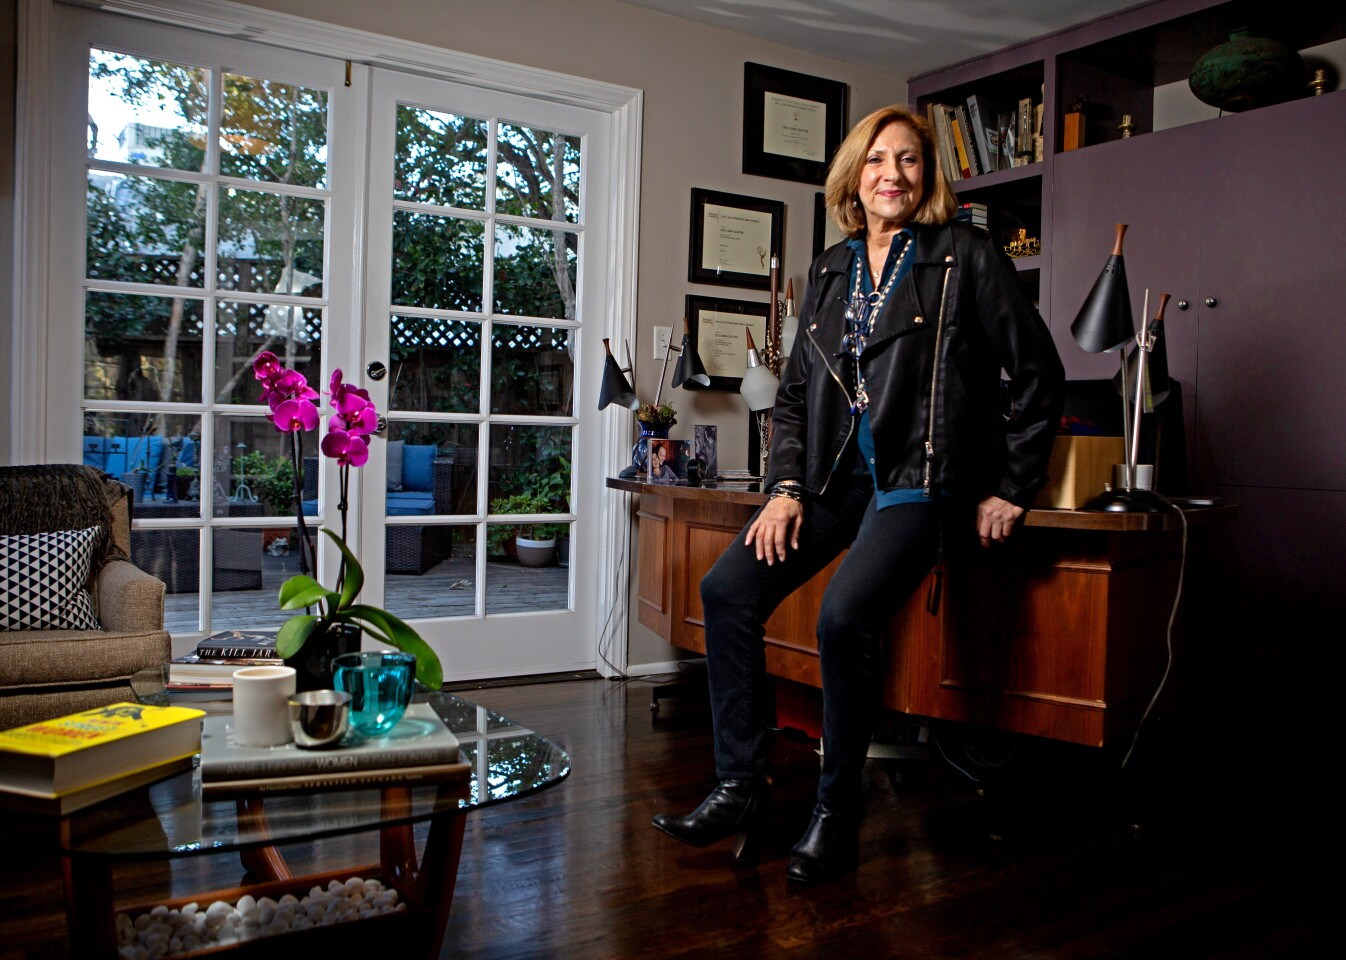 """Pacific Palisades, CA., February 10, 2020 — Leslie Linka Glatter, executive producer and director of """"Homeland"""", poses for a portrait in her home office on Monday, February 10, 2020 in Pacific Palisades, California. (Jason Armond / Los Angeles Times)"""